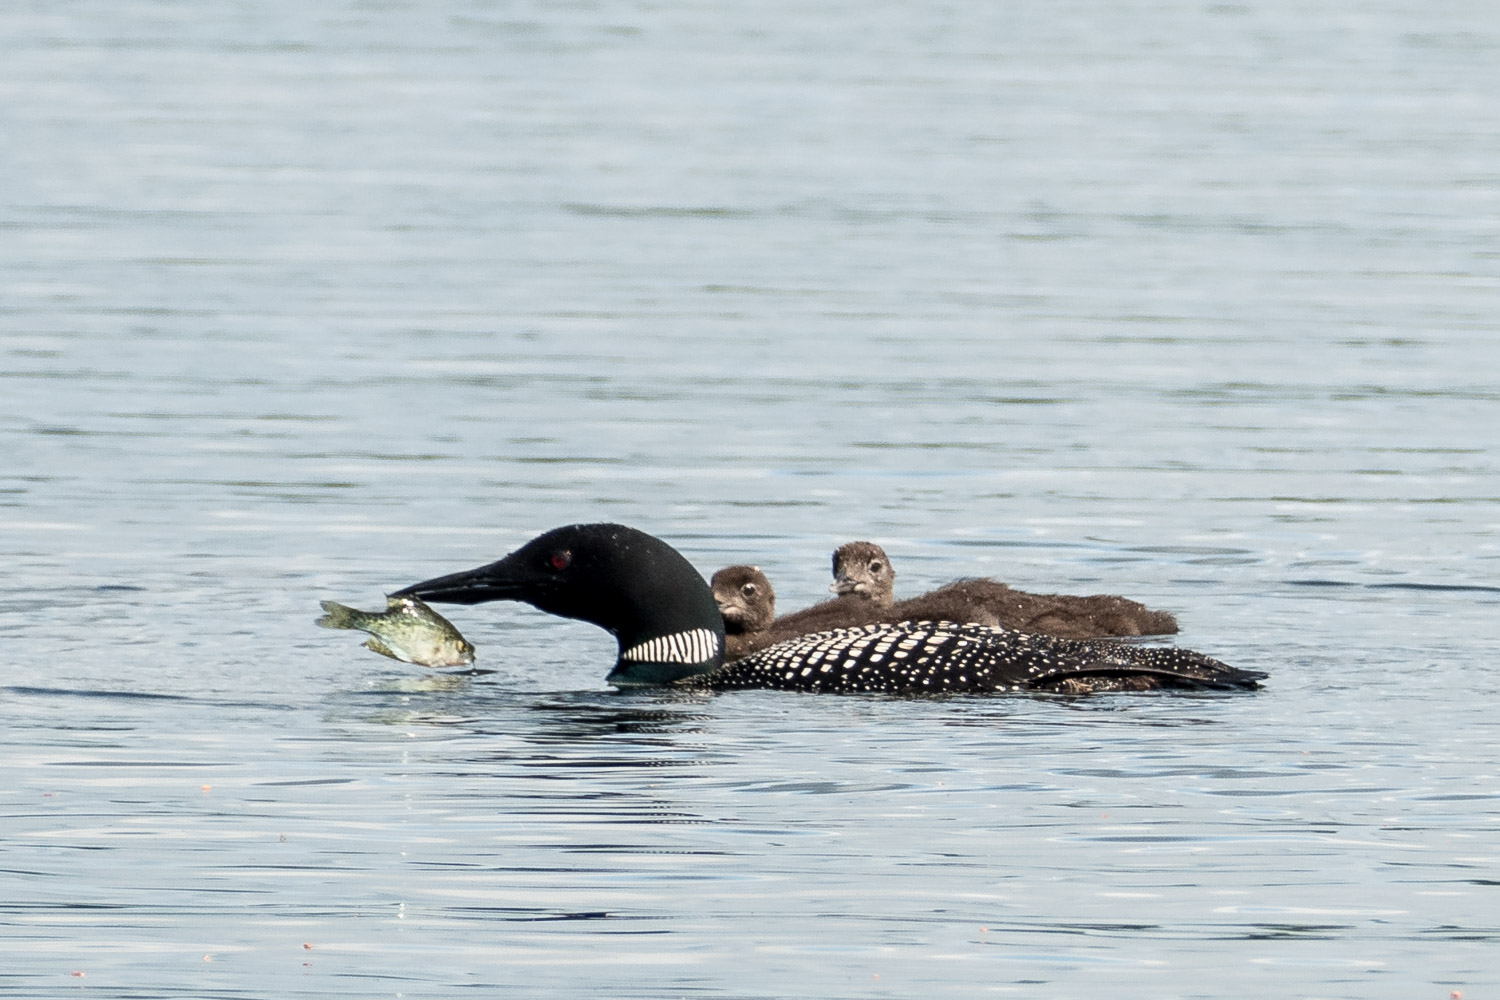 Loon with fish for the two chicks